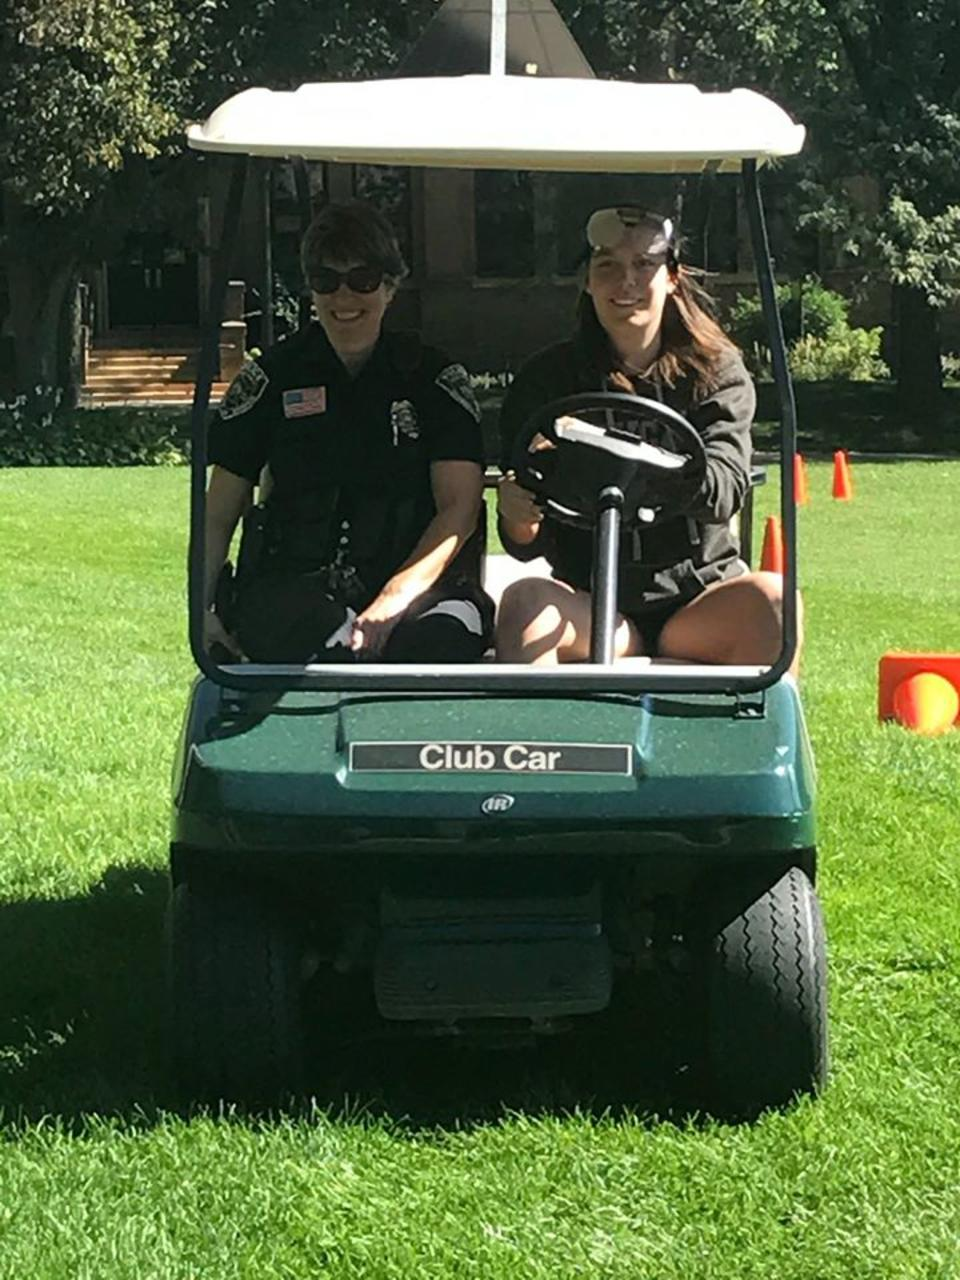 Fatal Vision participant in golf cart